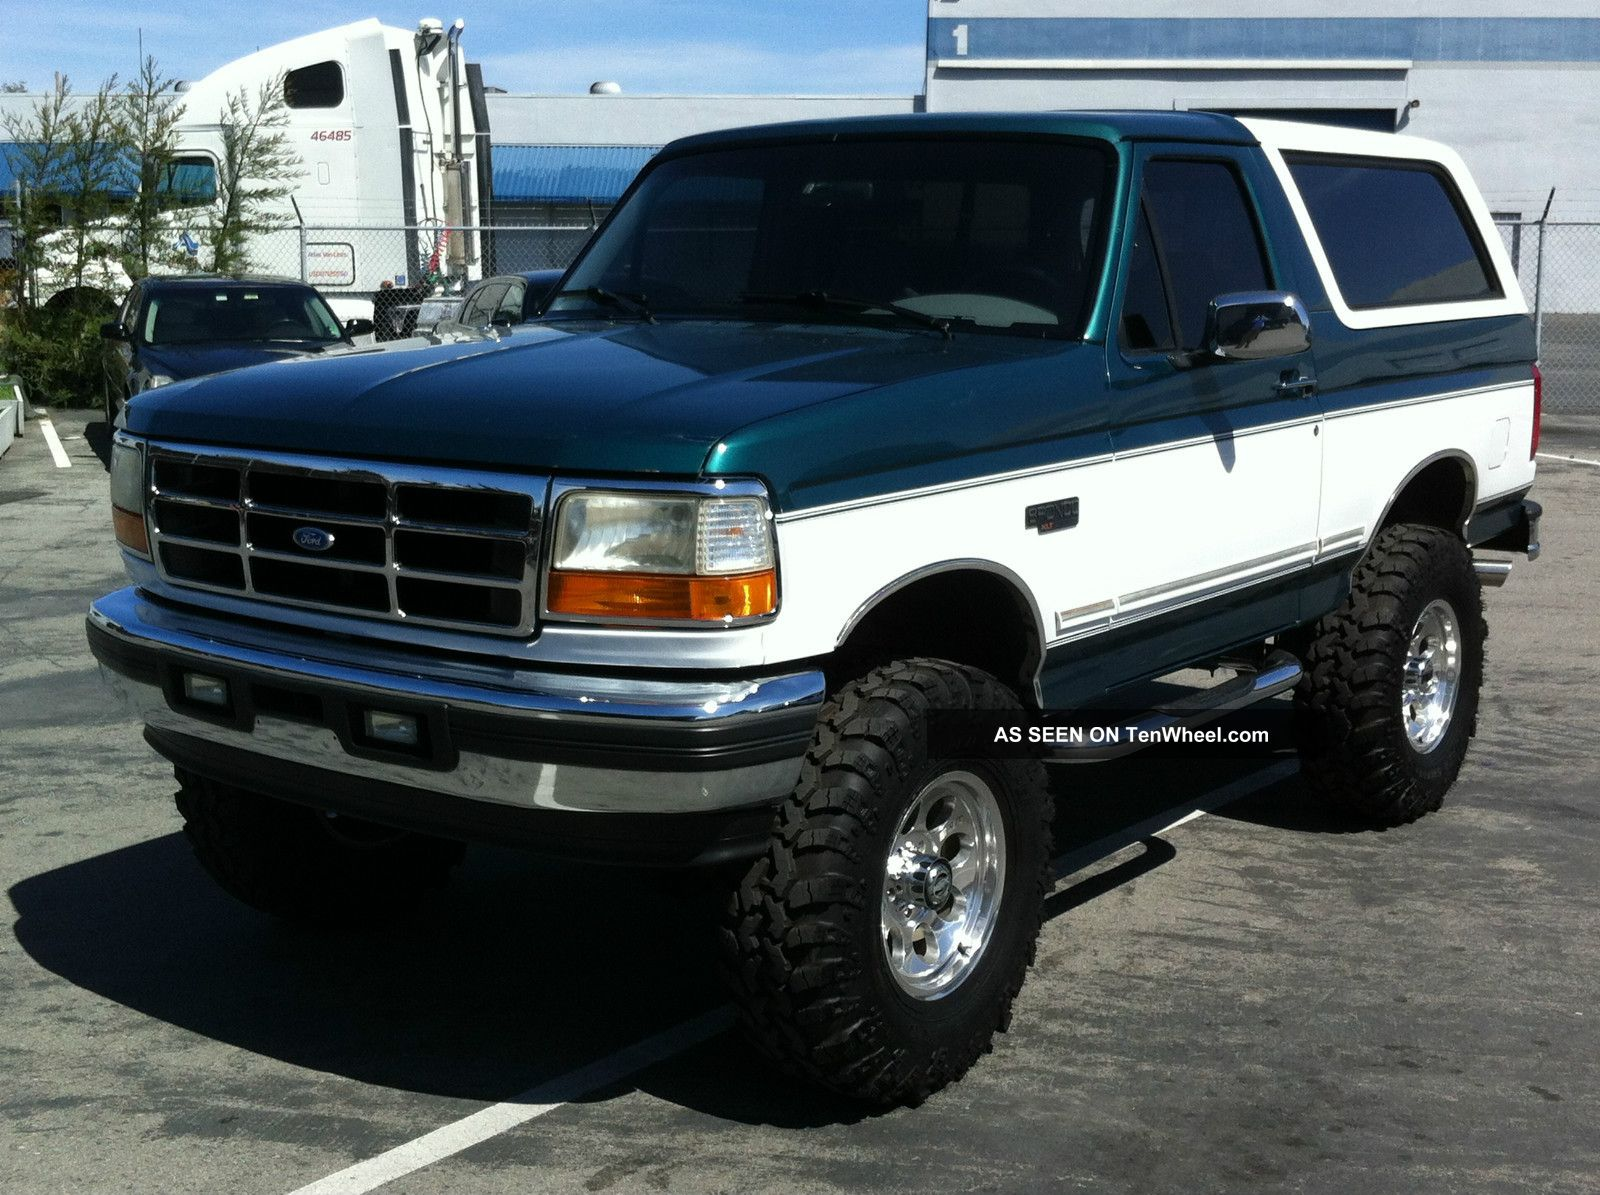 1996 Ford Bronco #16